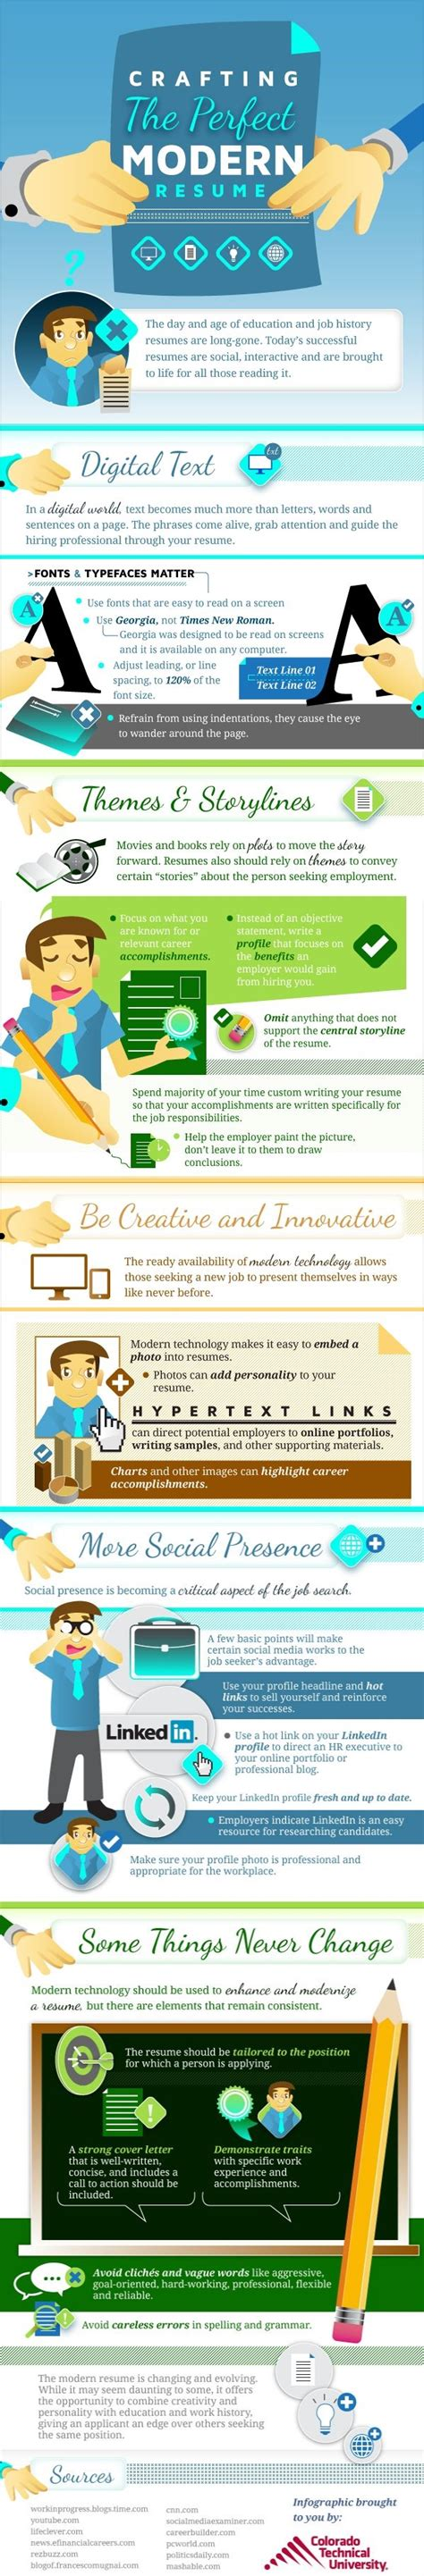 how to craft the modern resume infographic the